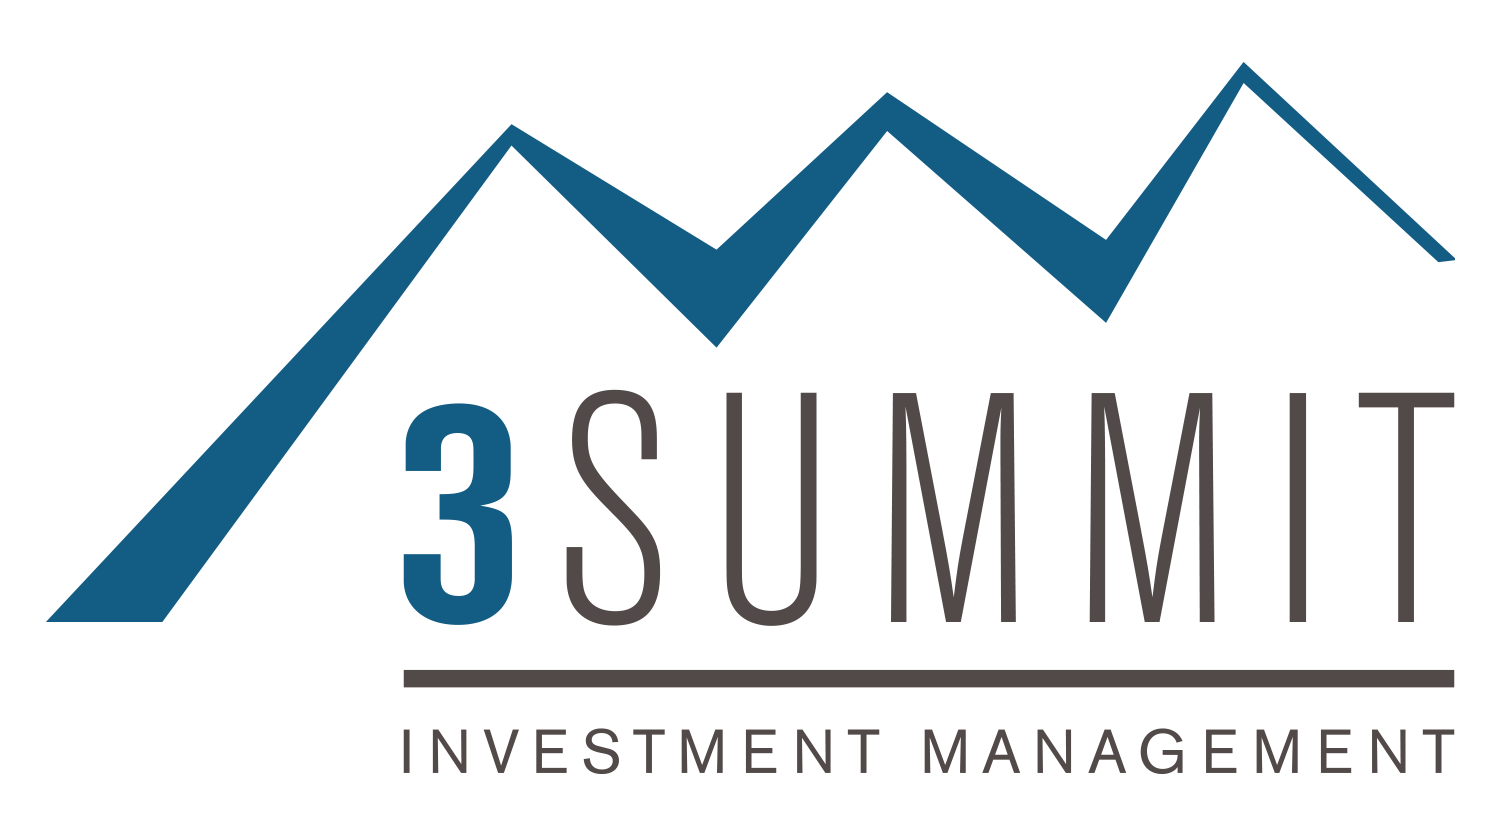 3Summit Investment Management